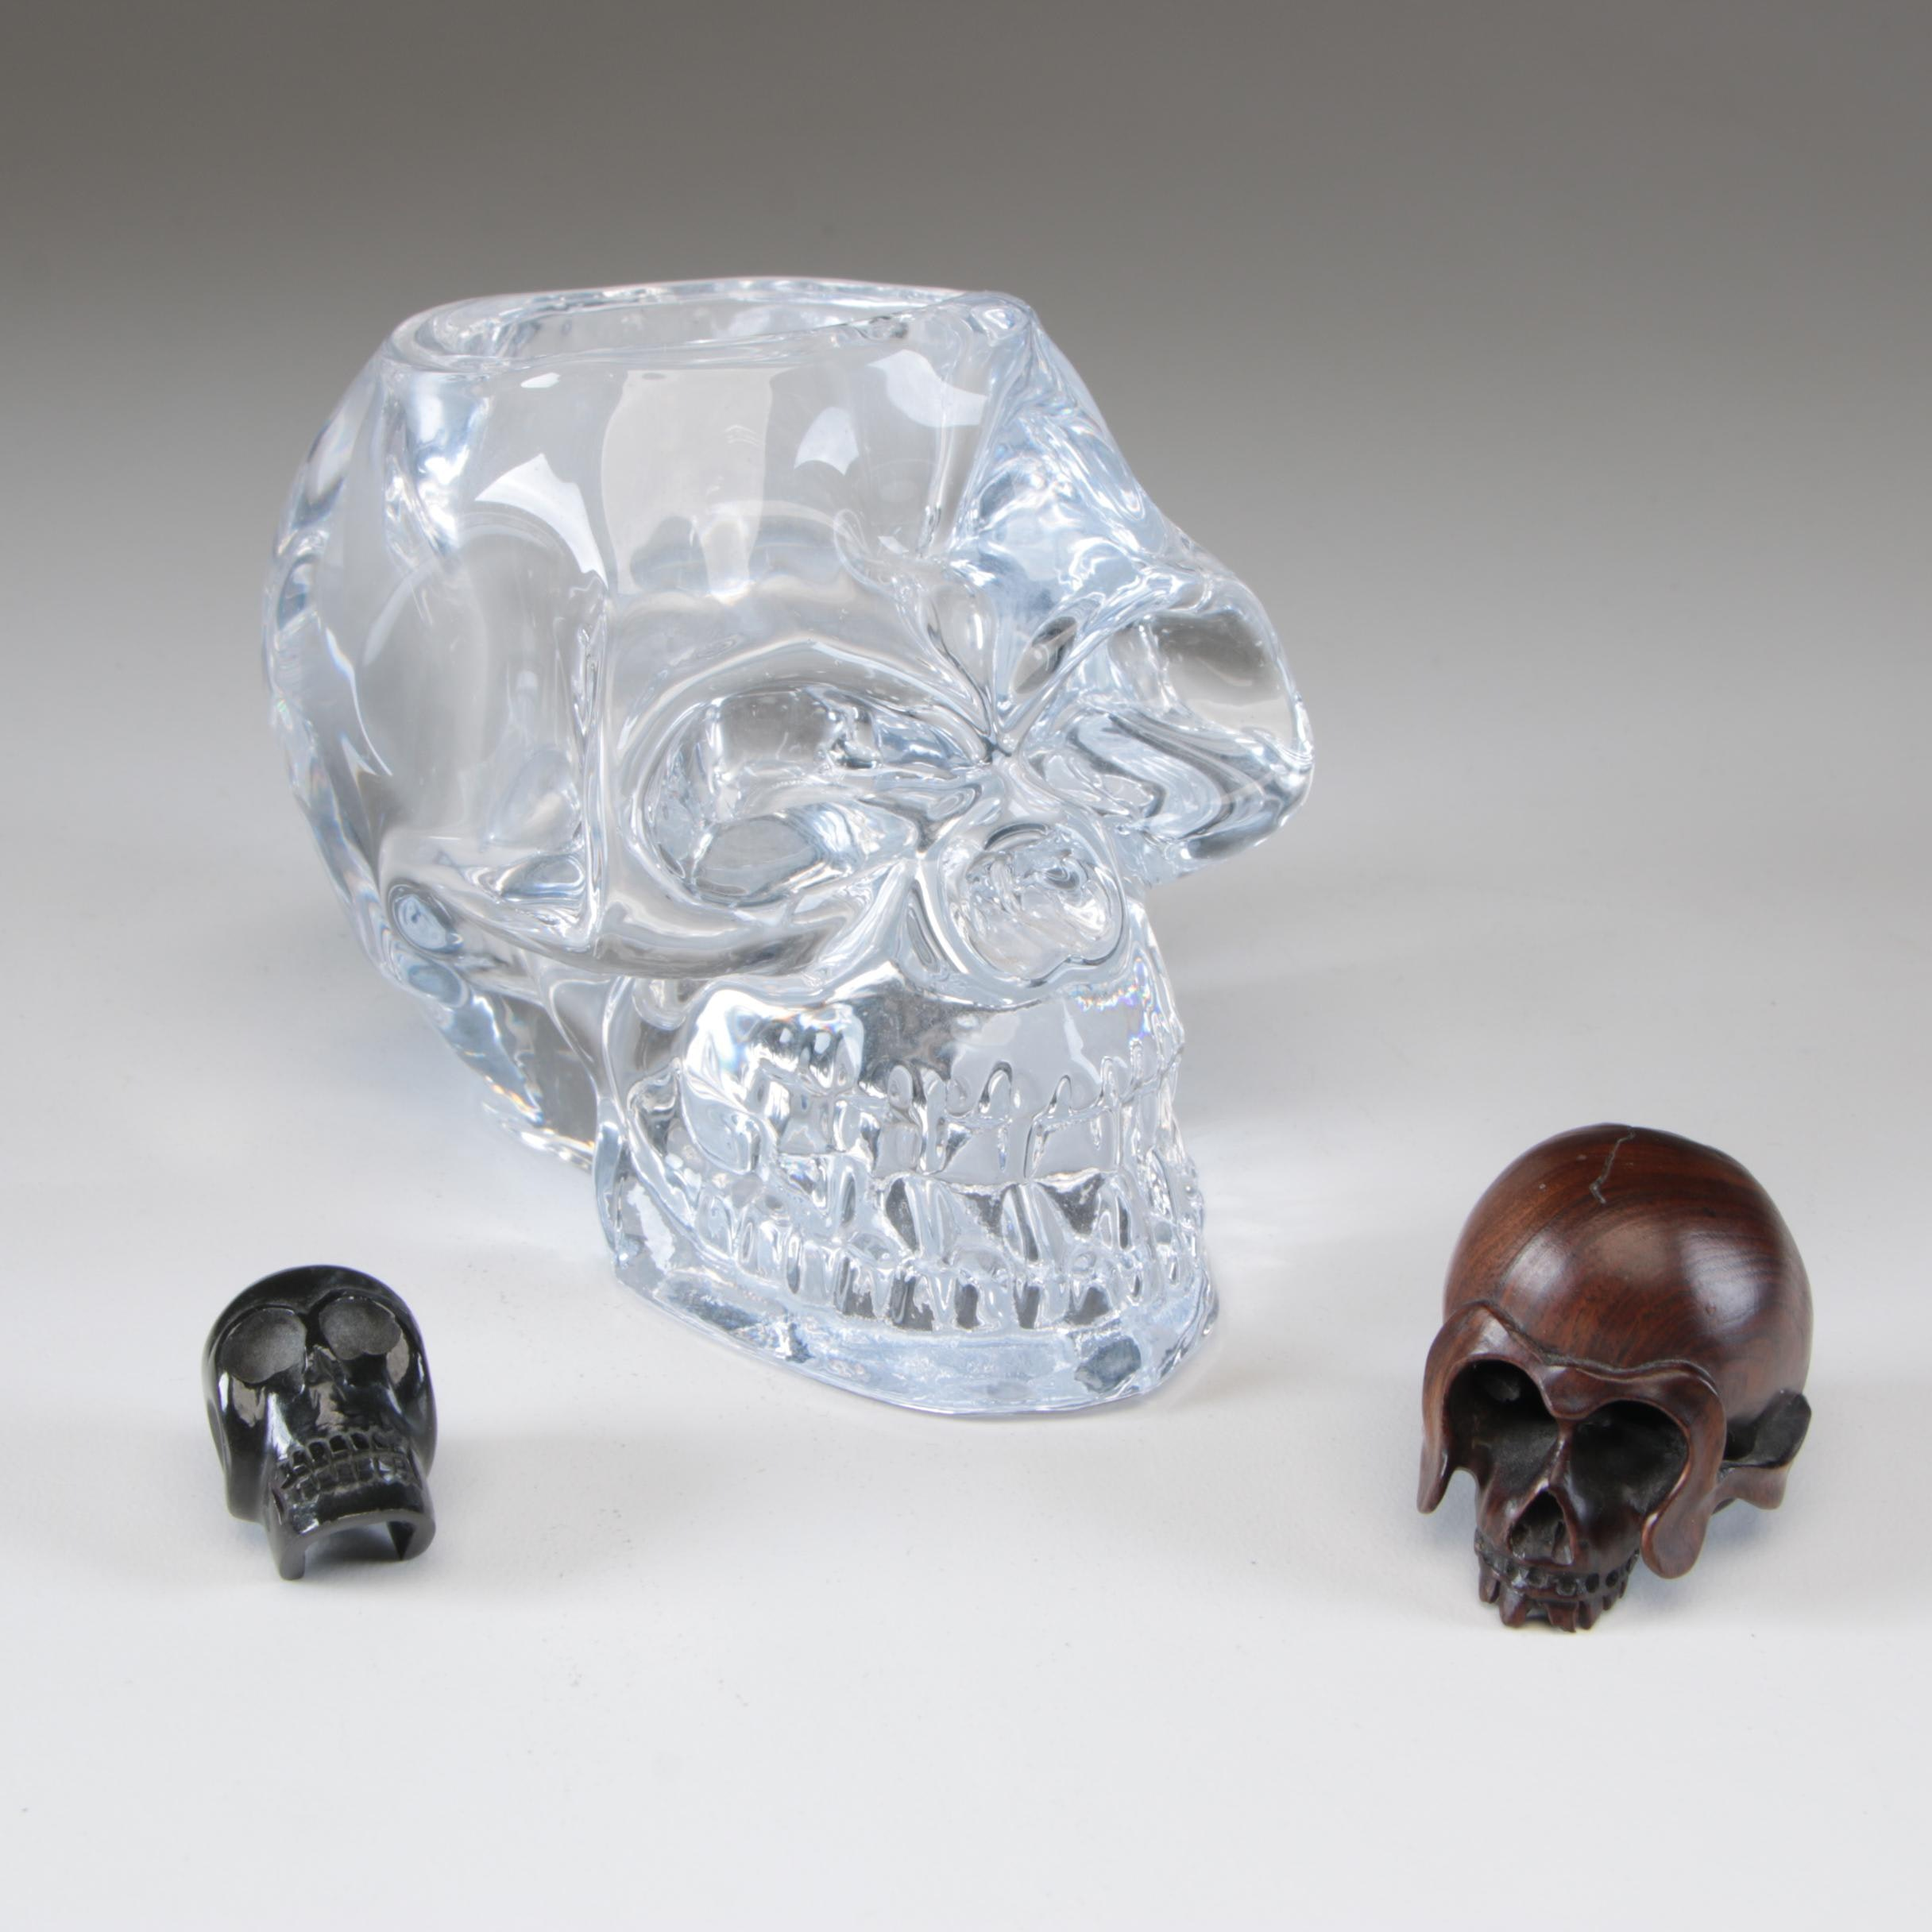 Skull Carvings and Candle Holder